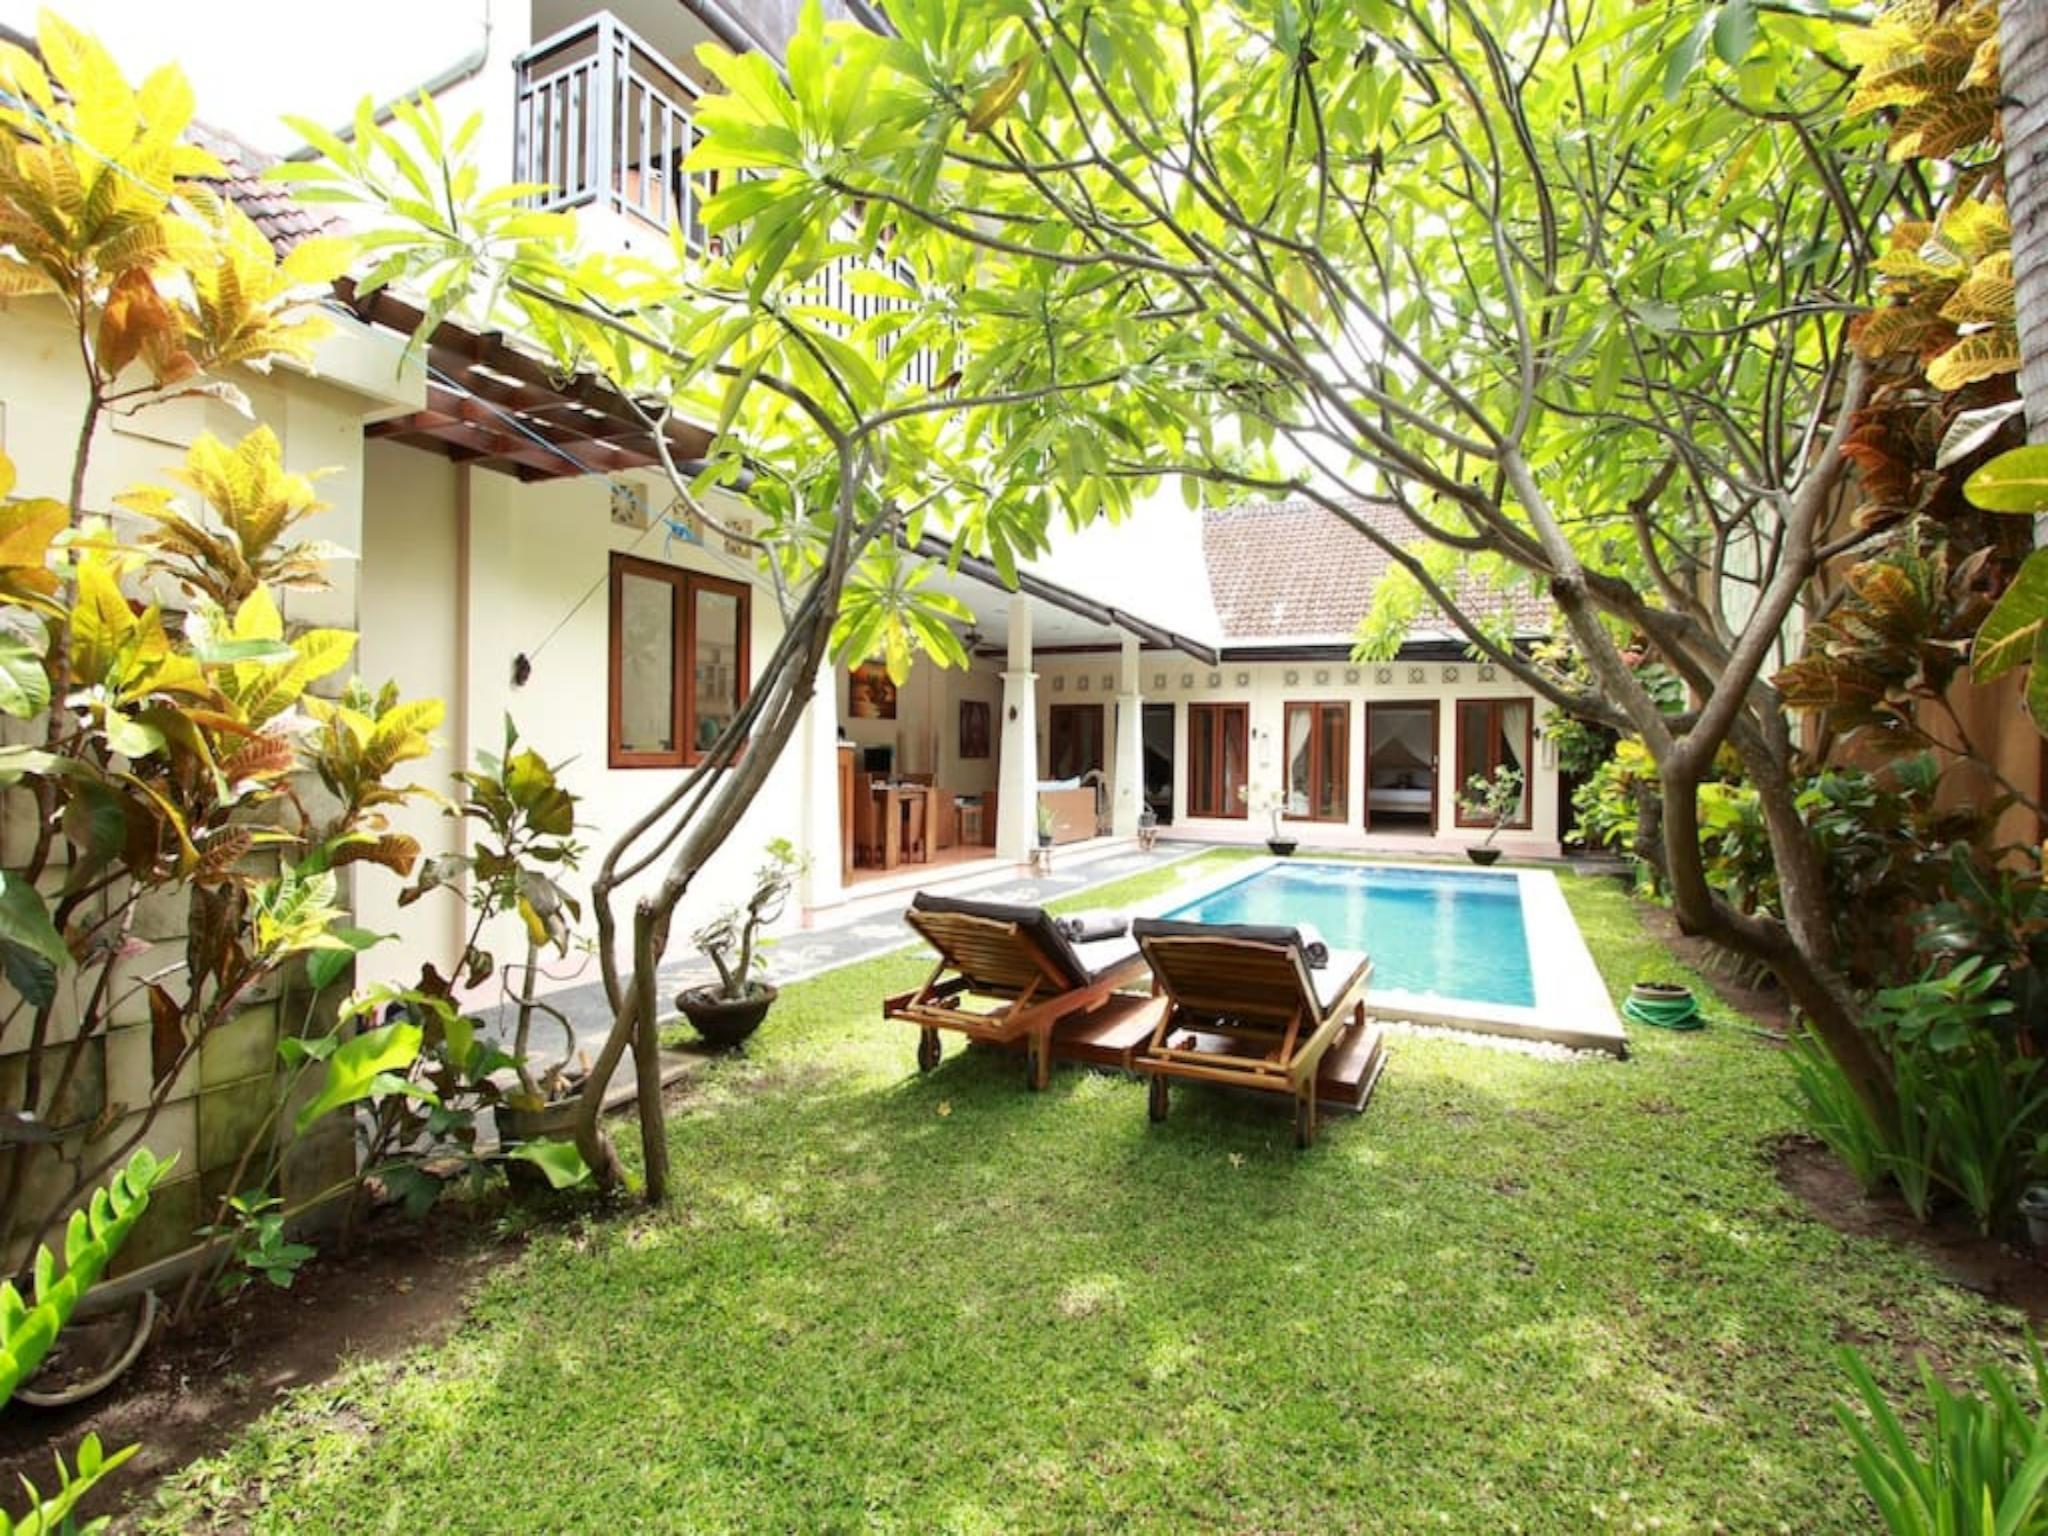 3-bedroom villa anggrek ホテル詳細